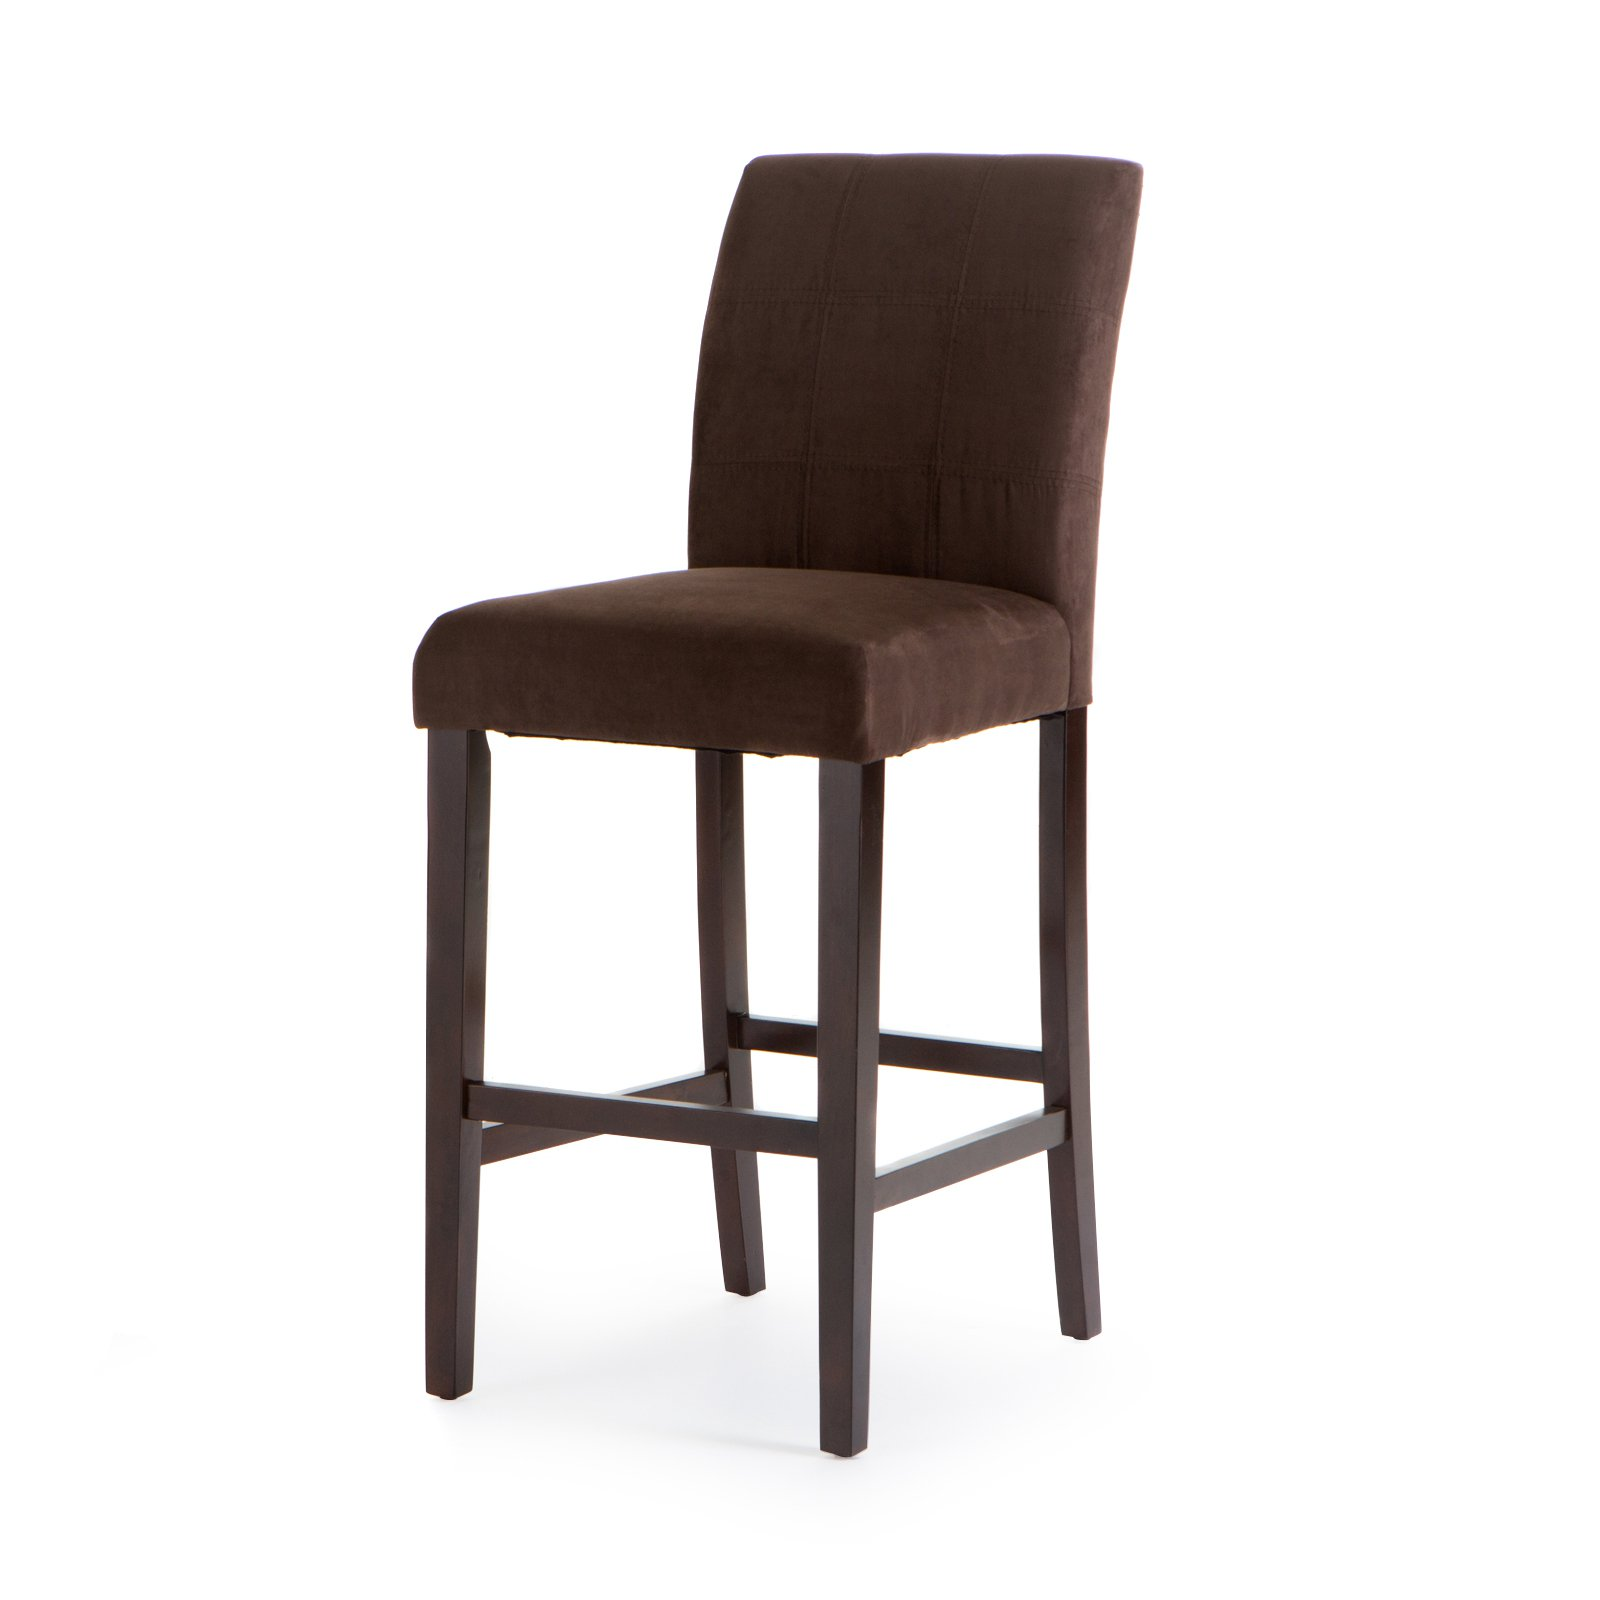 Finley Home Palazzo Bar Stool Set Of 2 Chocolate Upholstered